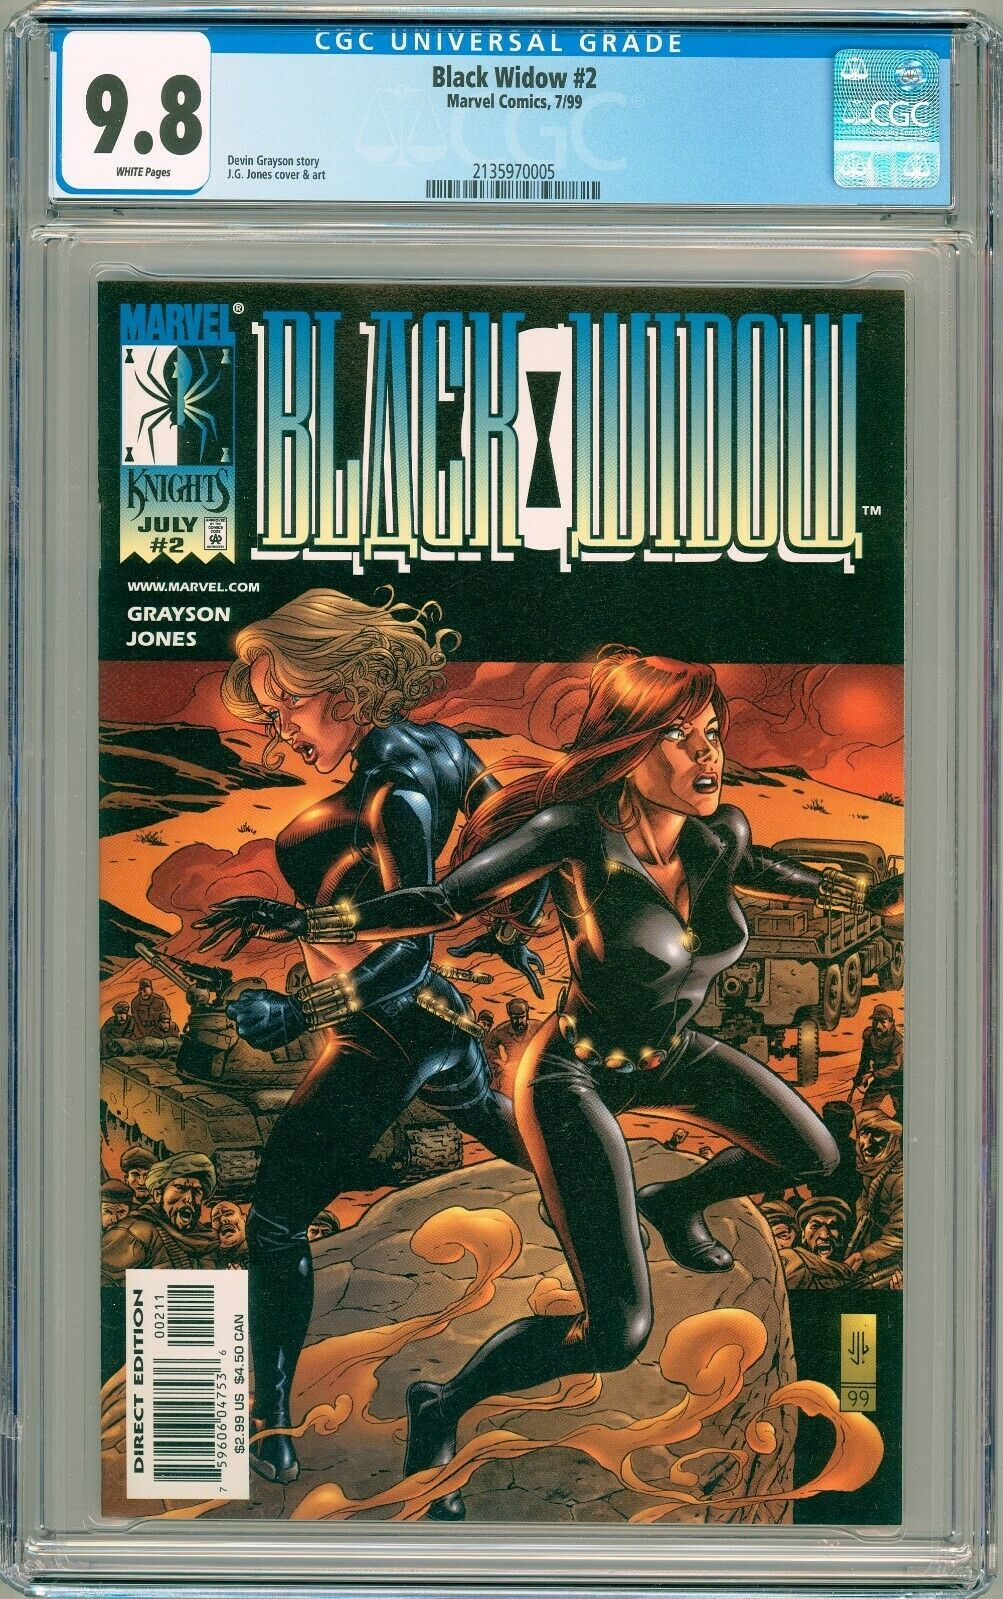 Primary image for Black Widow #2 1999 Marvel CGC 9.8